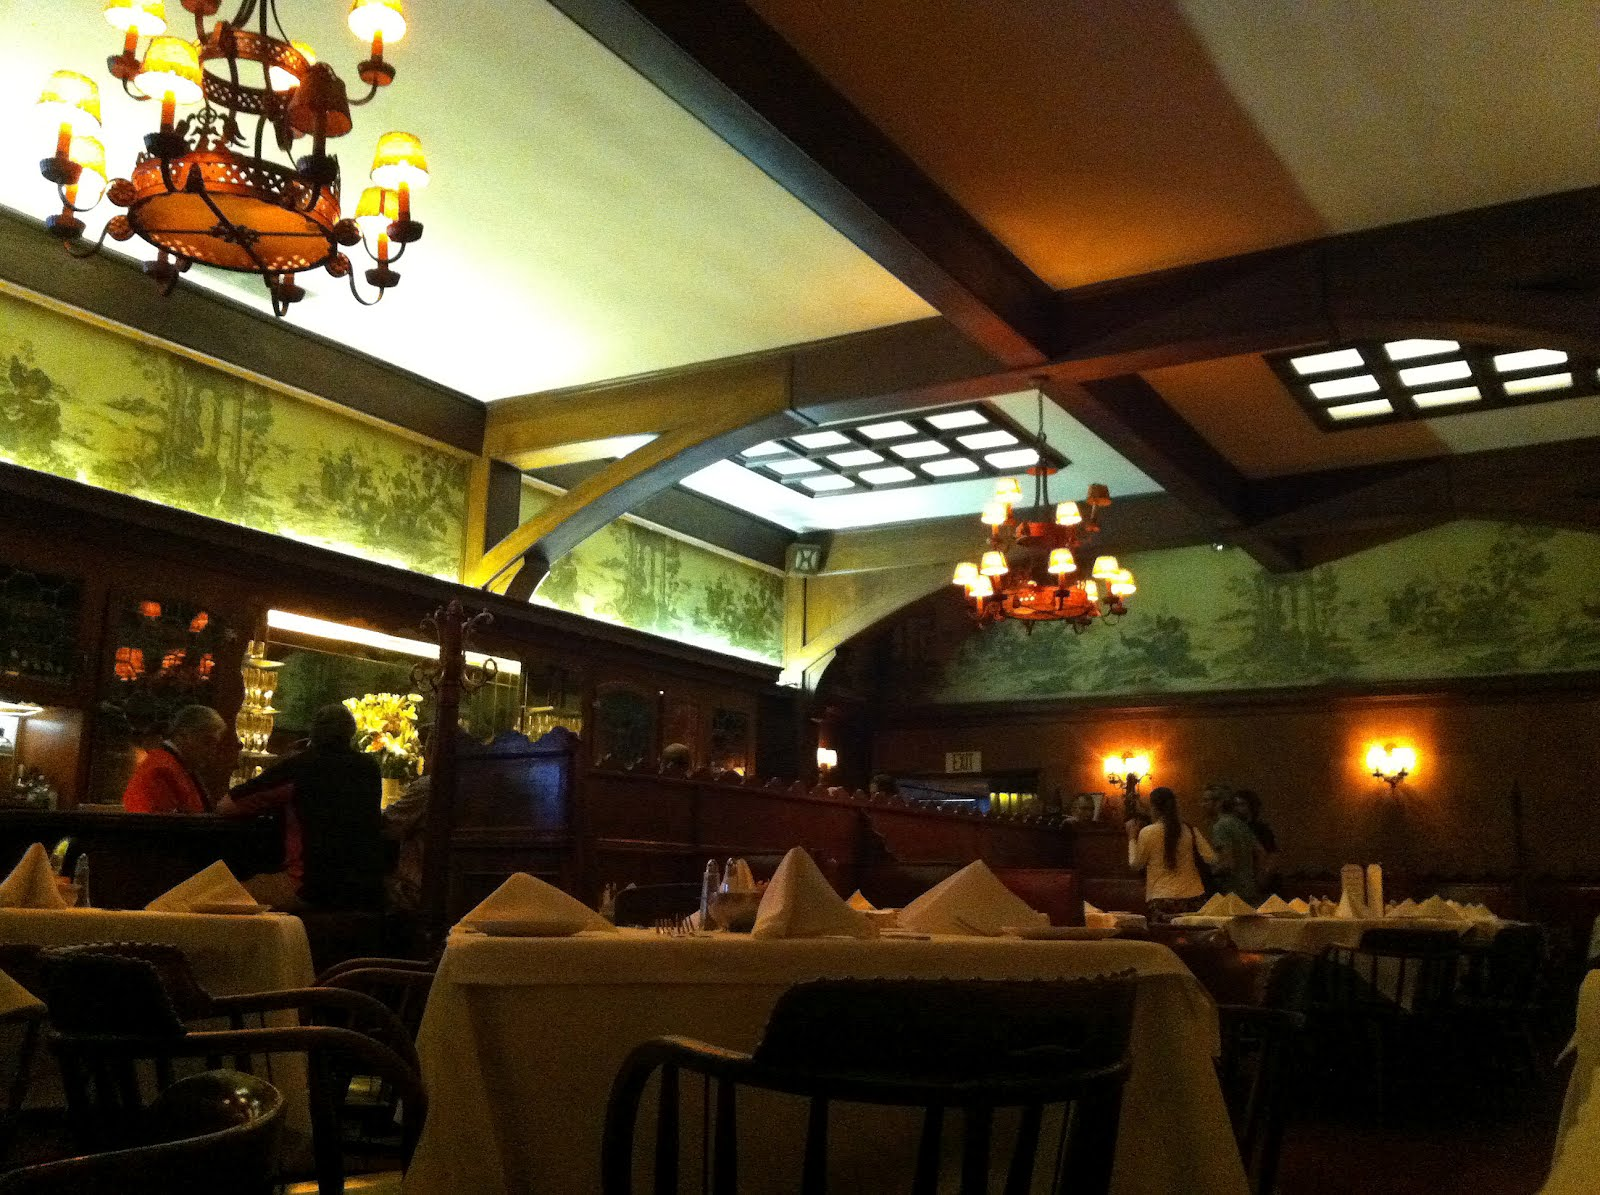 Cafe la la musso and frank grill in hollywood - Musso and frank grill hollywood ...